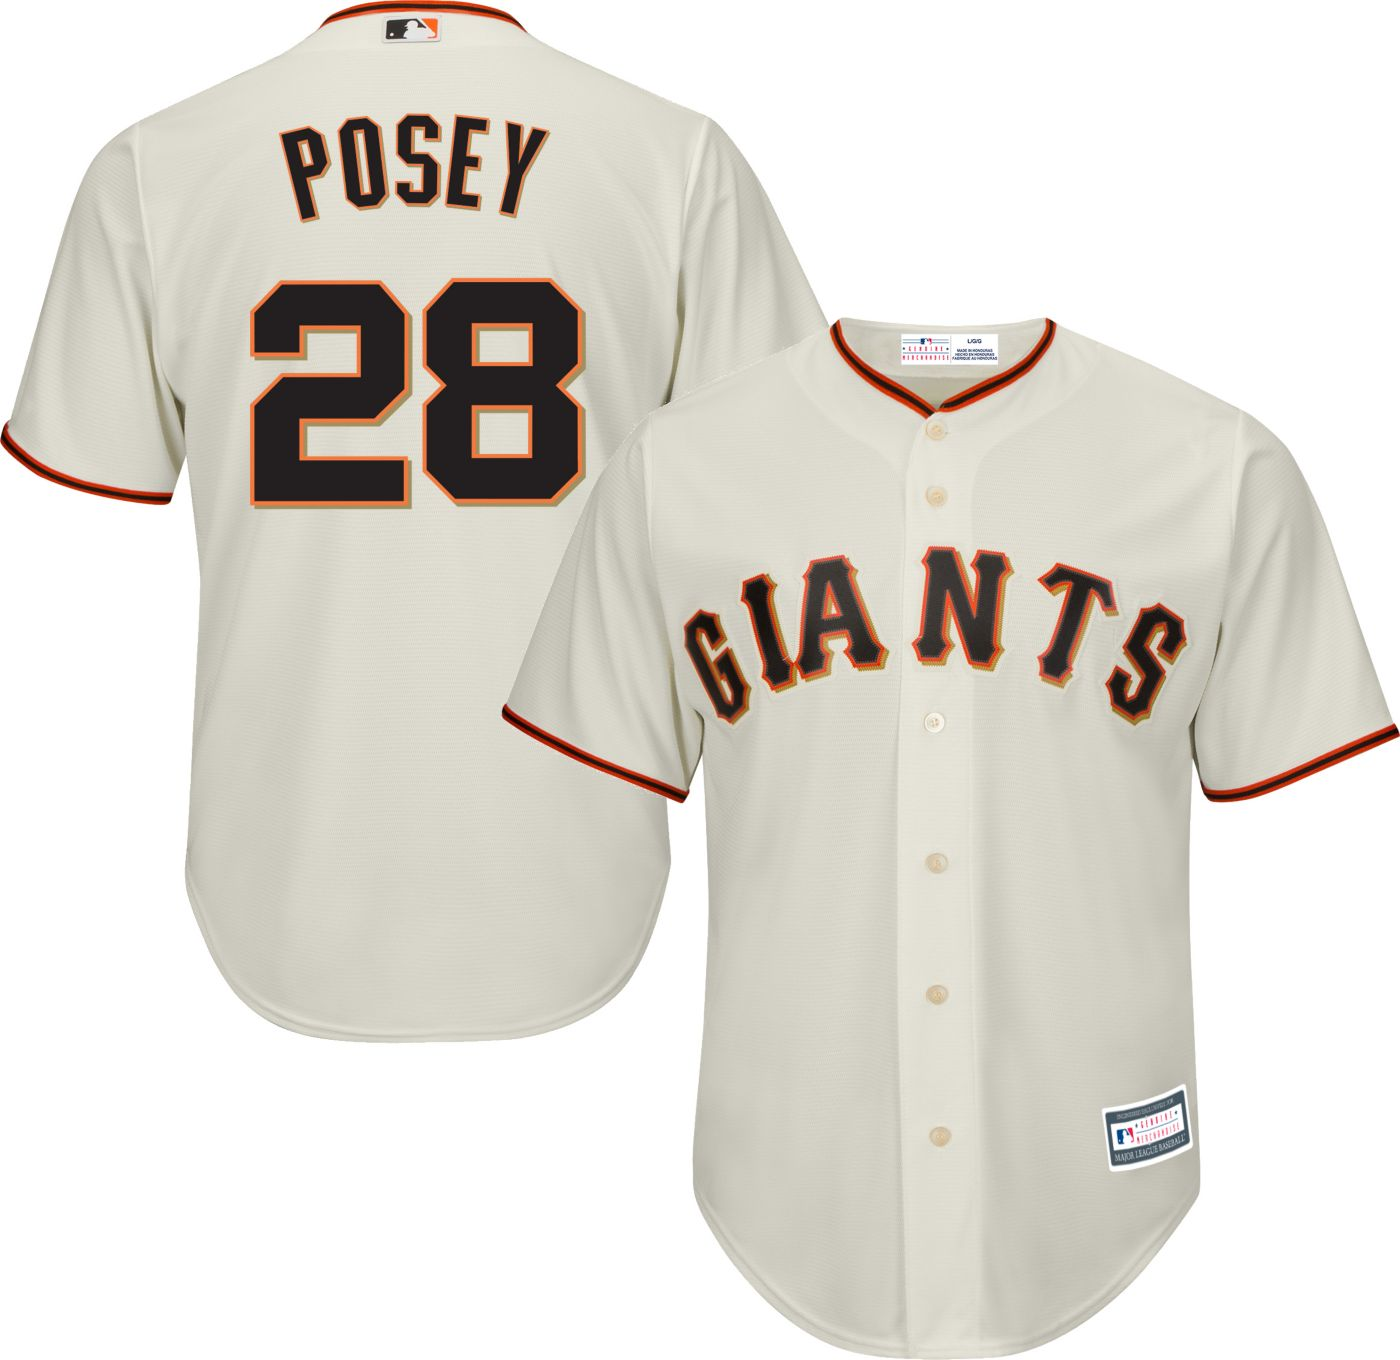 Youth Replica San Francisco Giants Buster Posey #28 Home Ivory Jersey